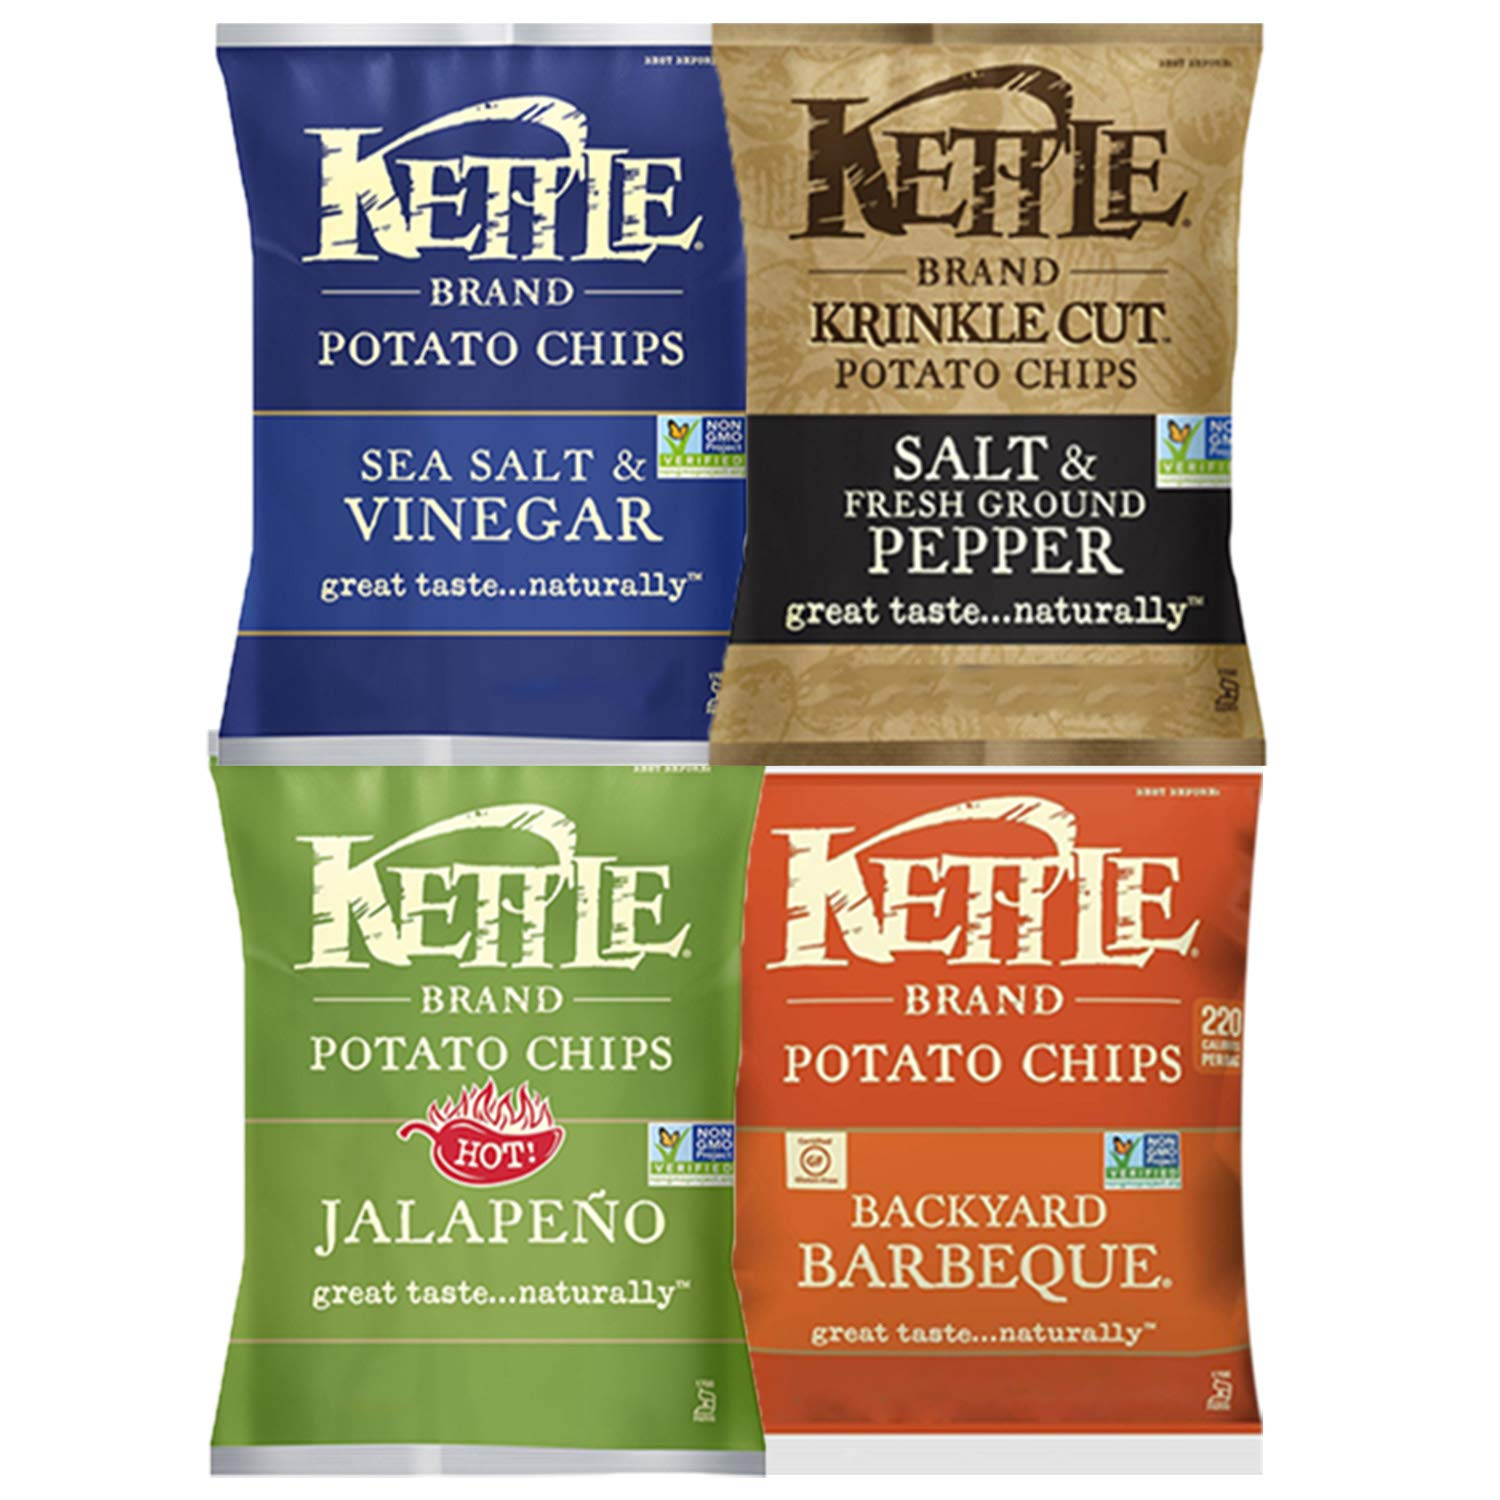 Kettle Brand Potato Chips, Individual Single Serve Bags, Many Different Flavors Sampler Variety Pack (12 Count) by Custom Varietea (Image #4)